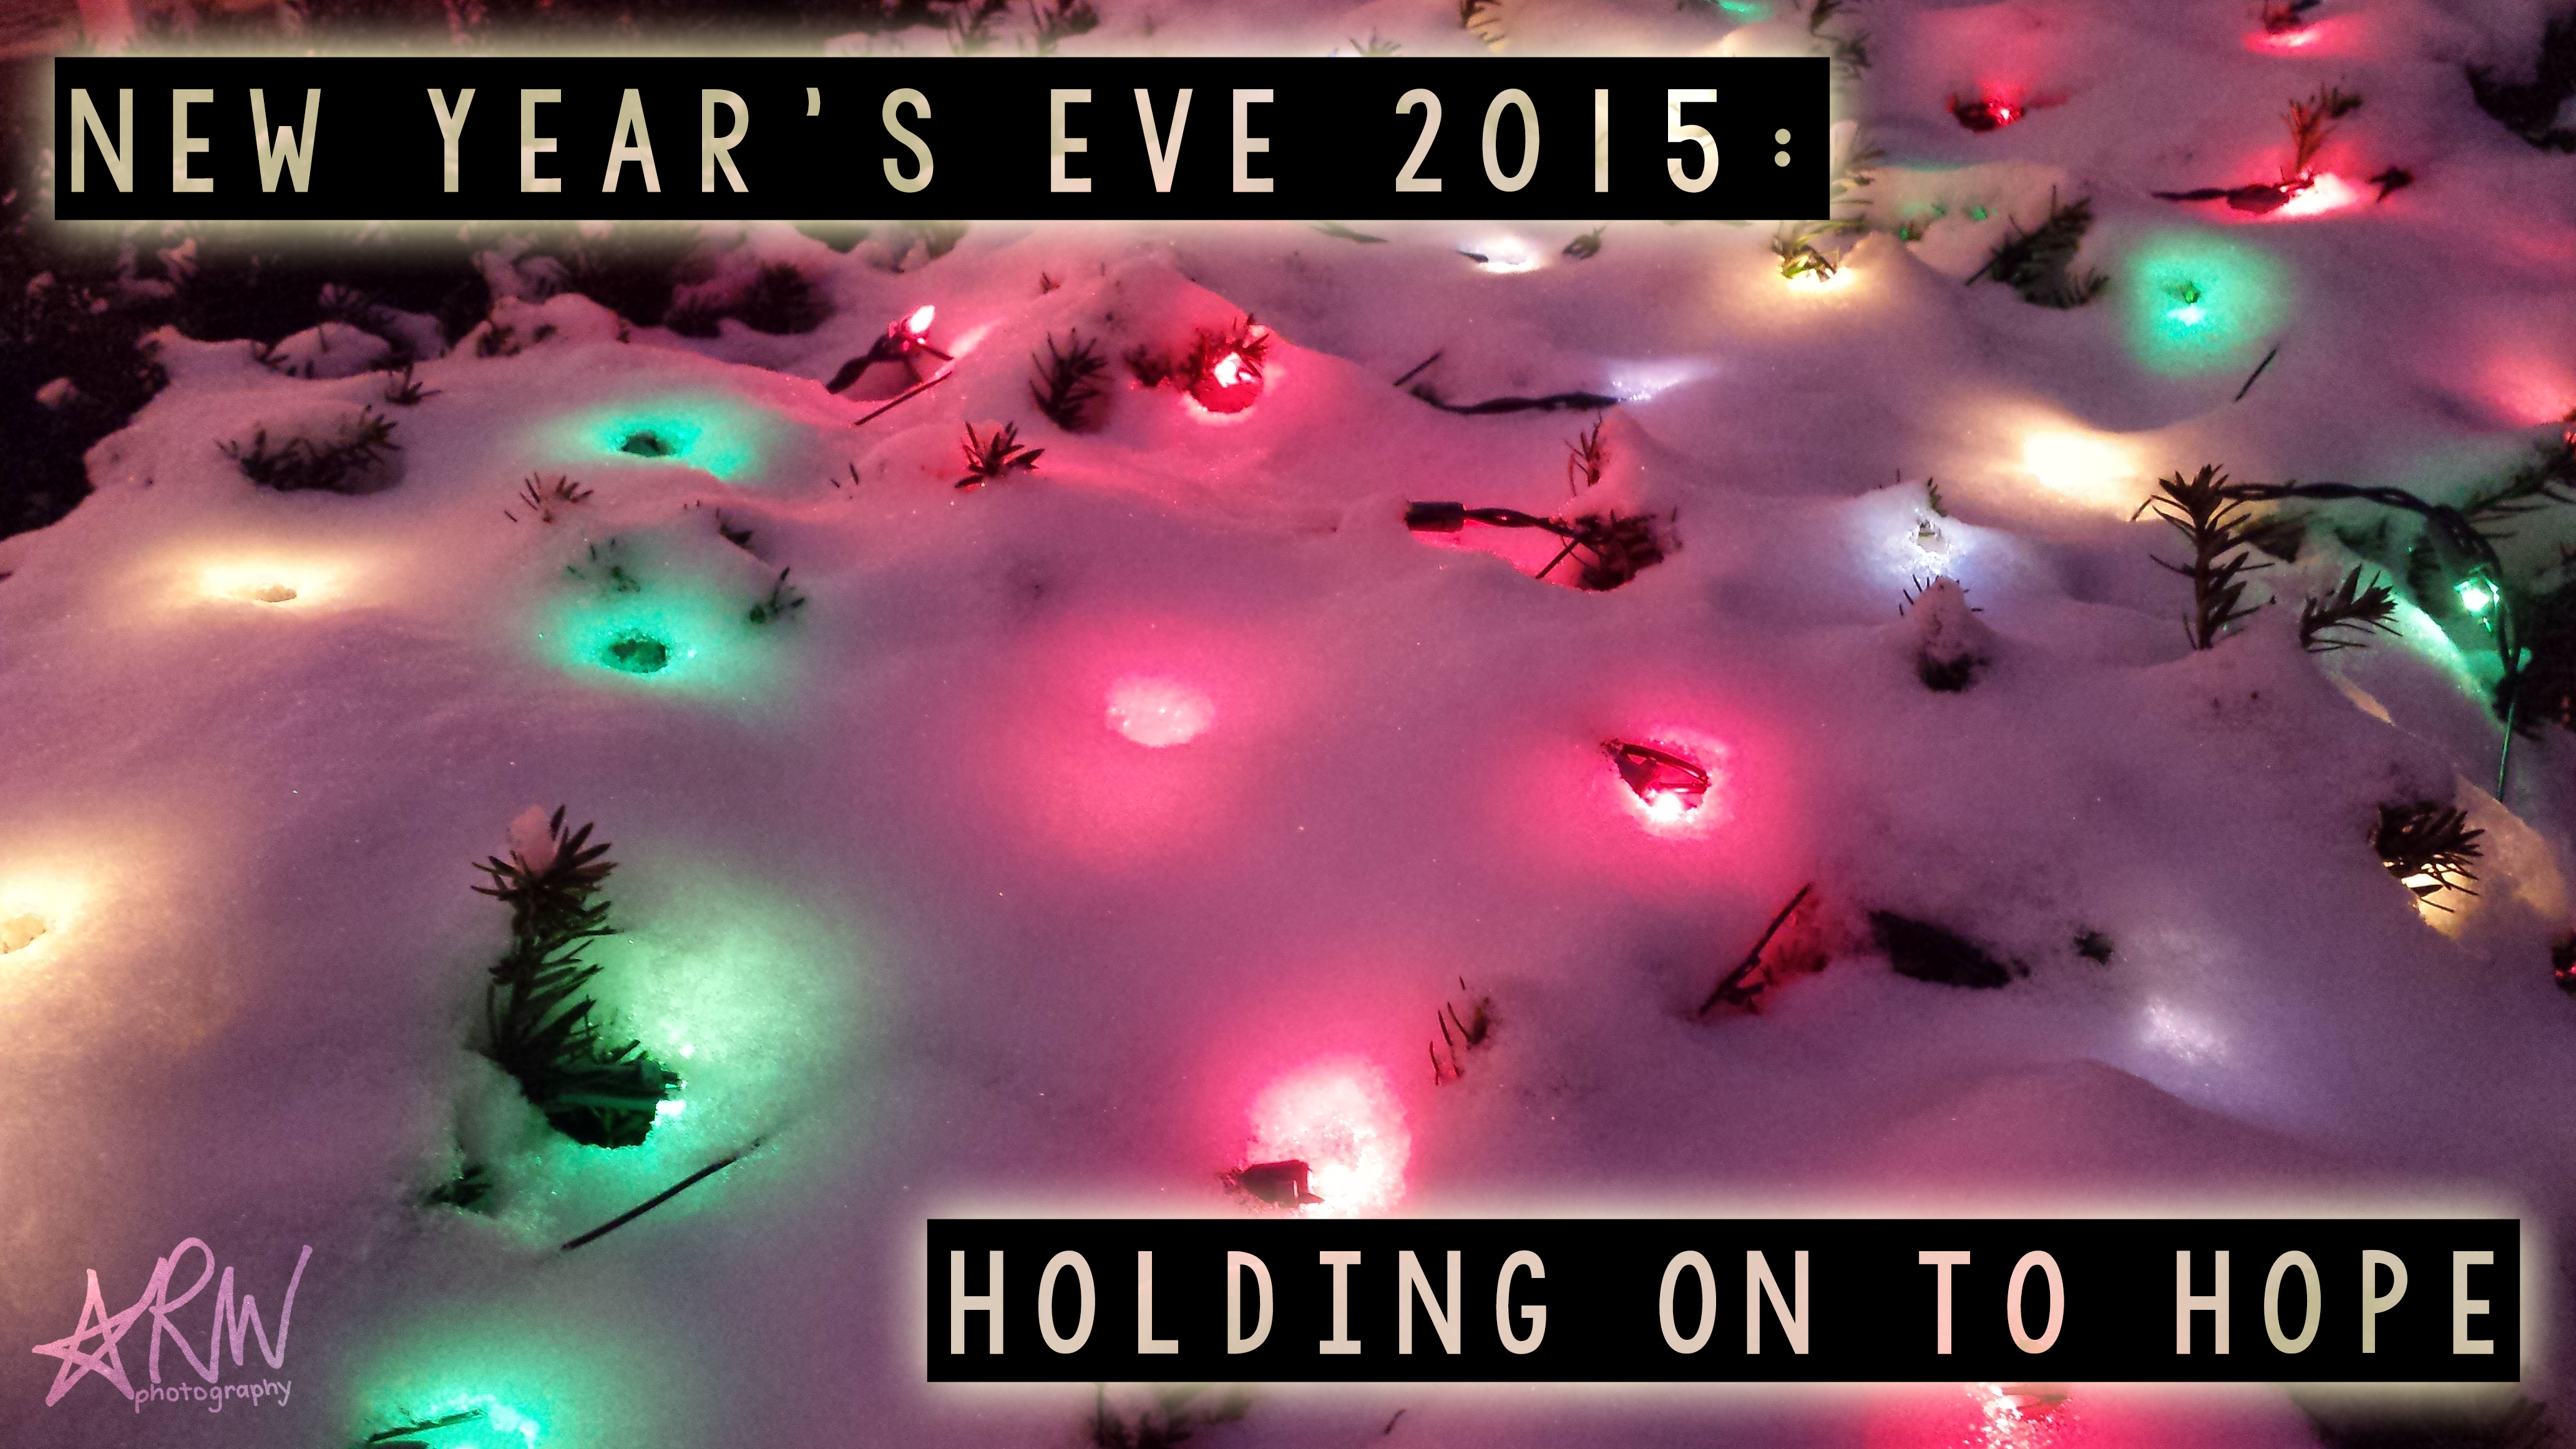 New Year's Eve 2015: Holding on to Hope